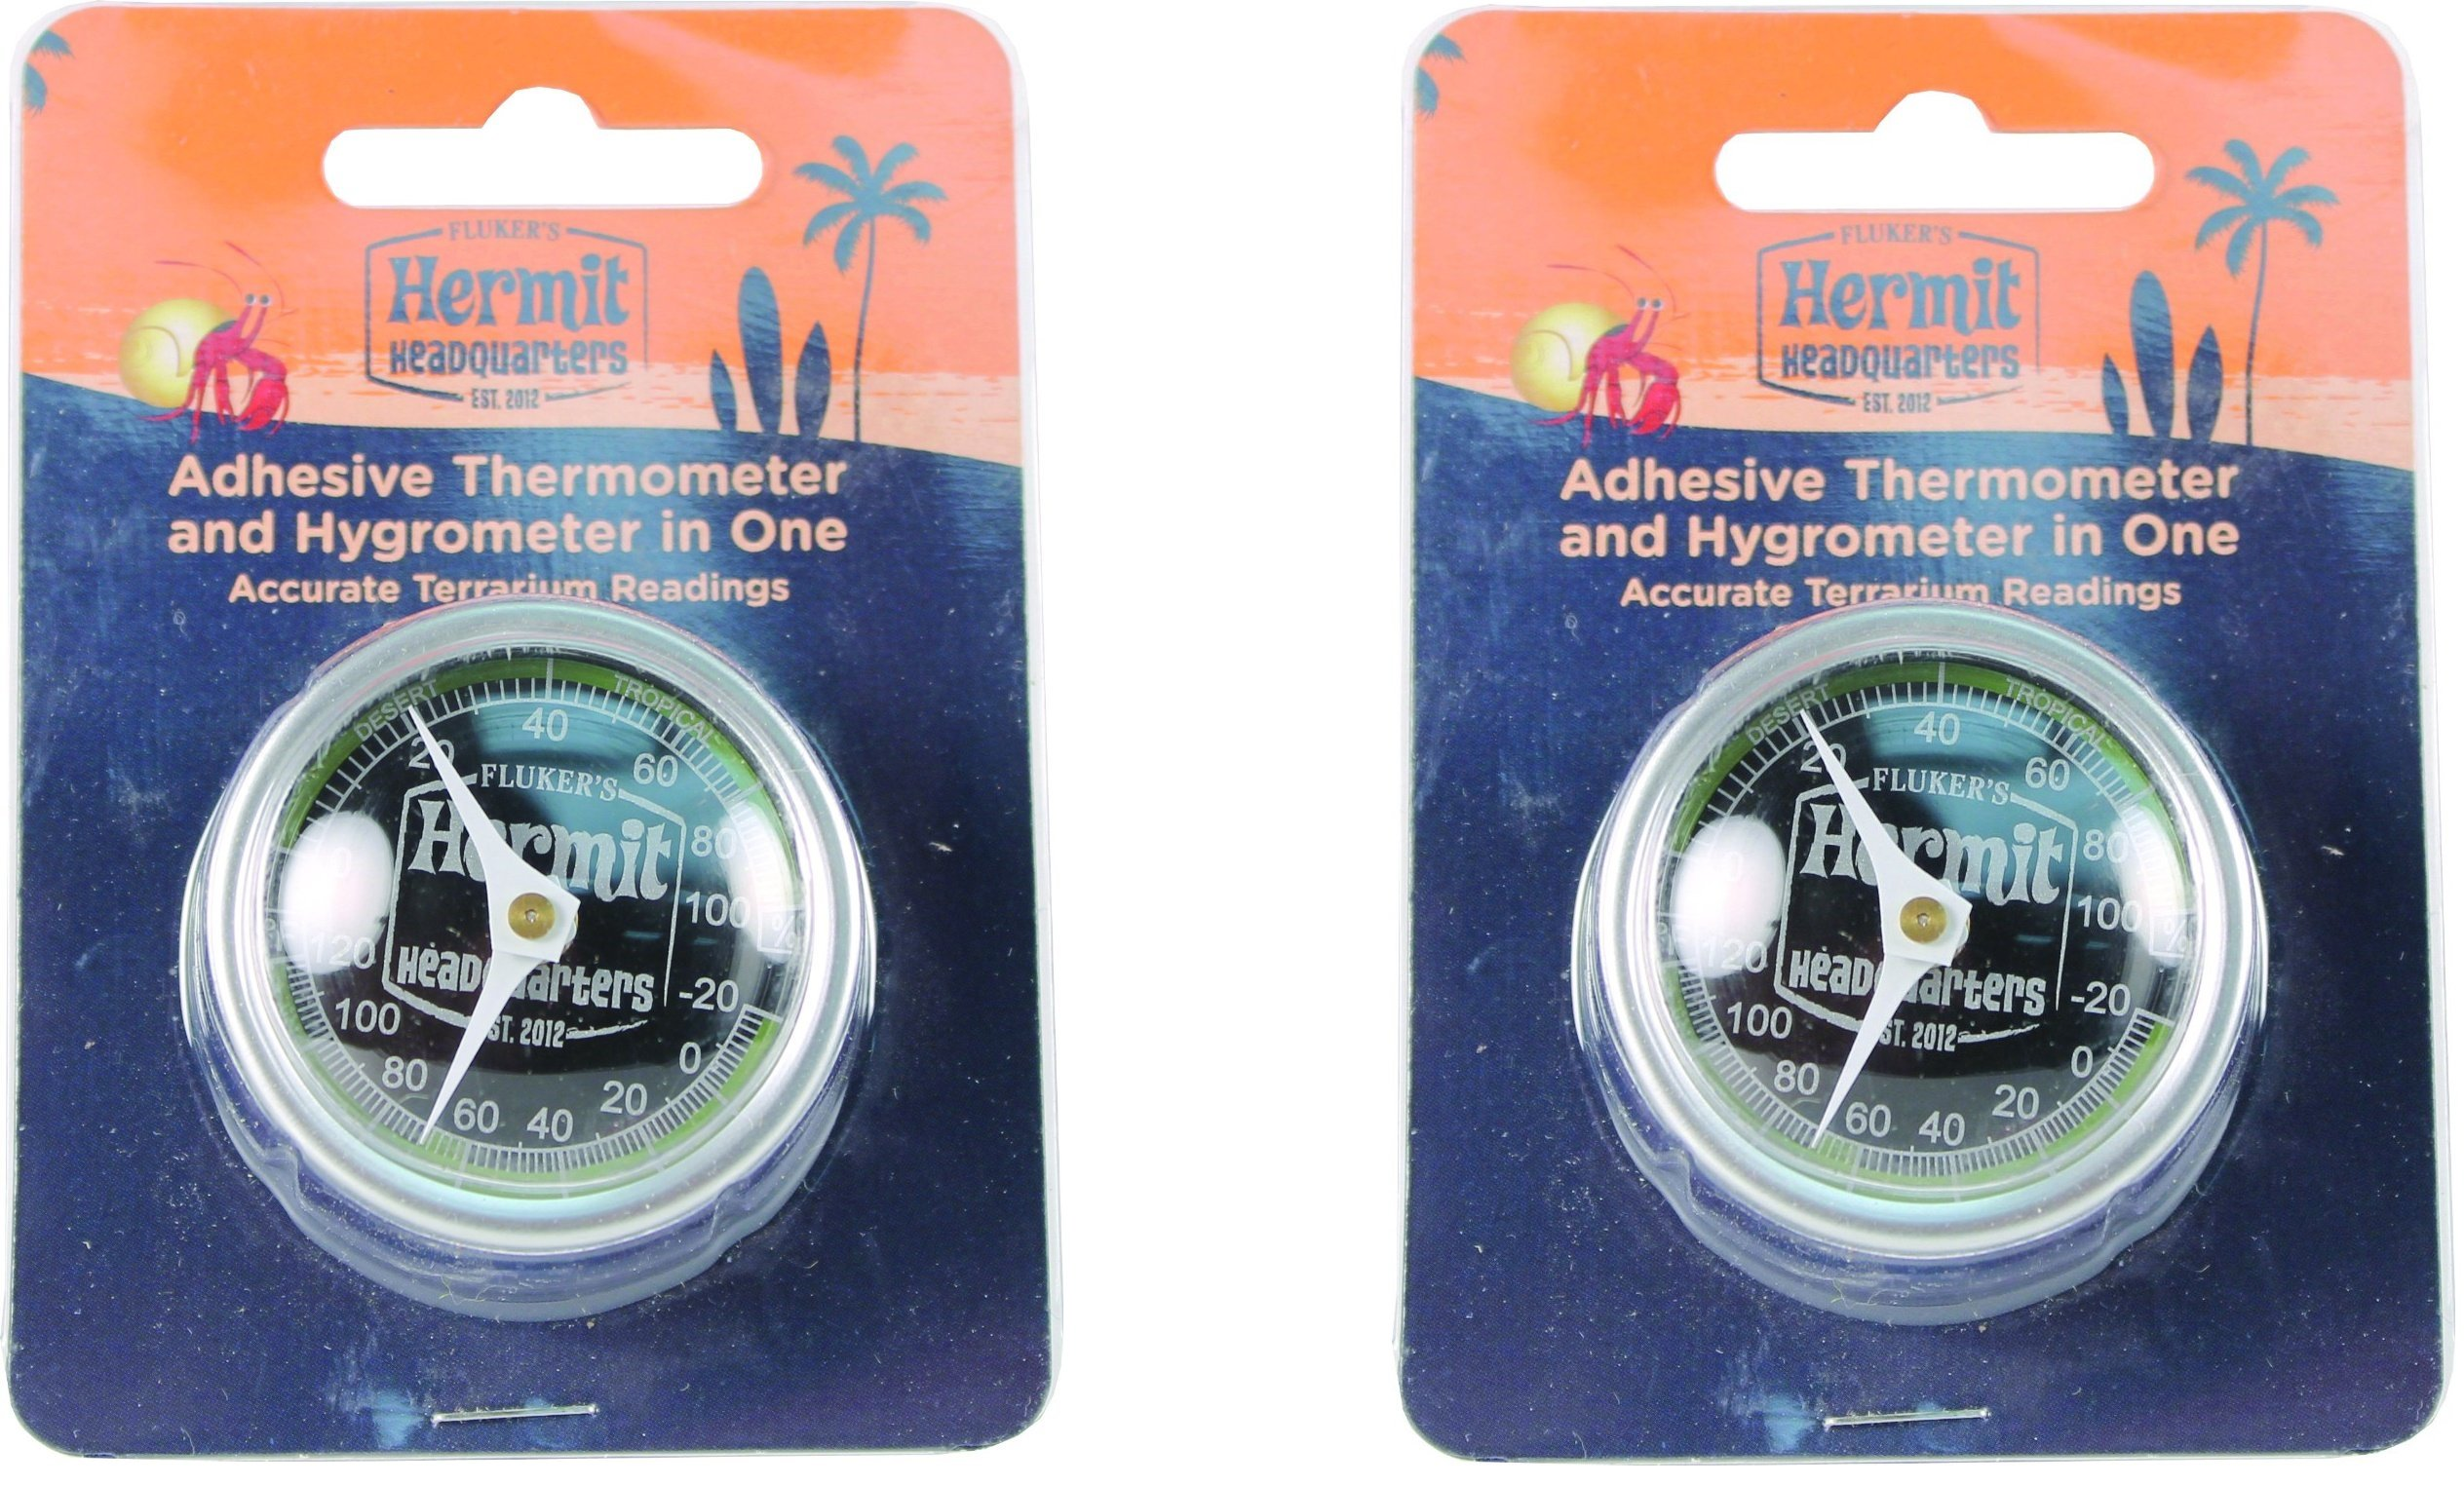 Flukers Hermit Headquarters Thermometer & Hydrometer Combo (2 Pack)